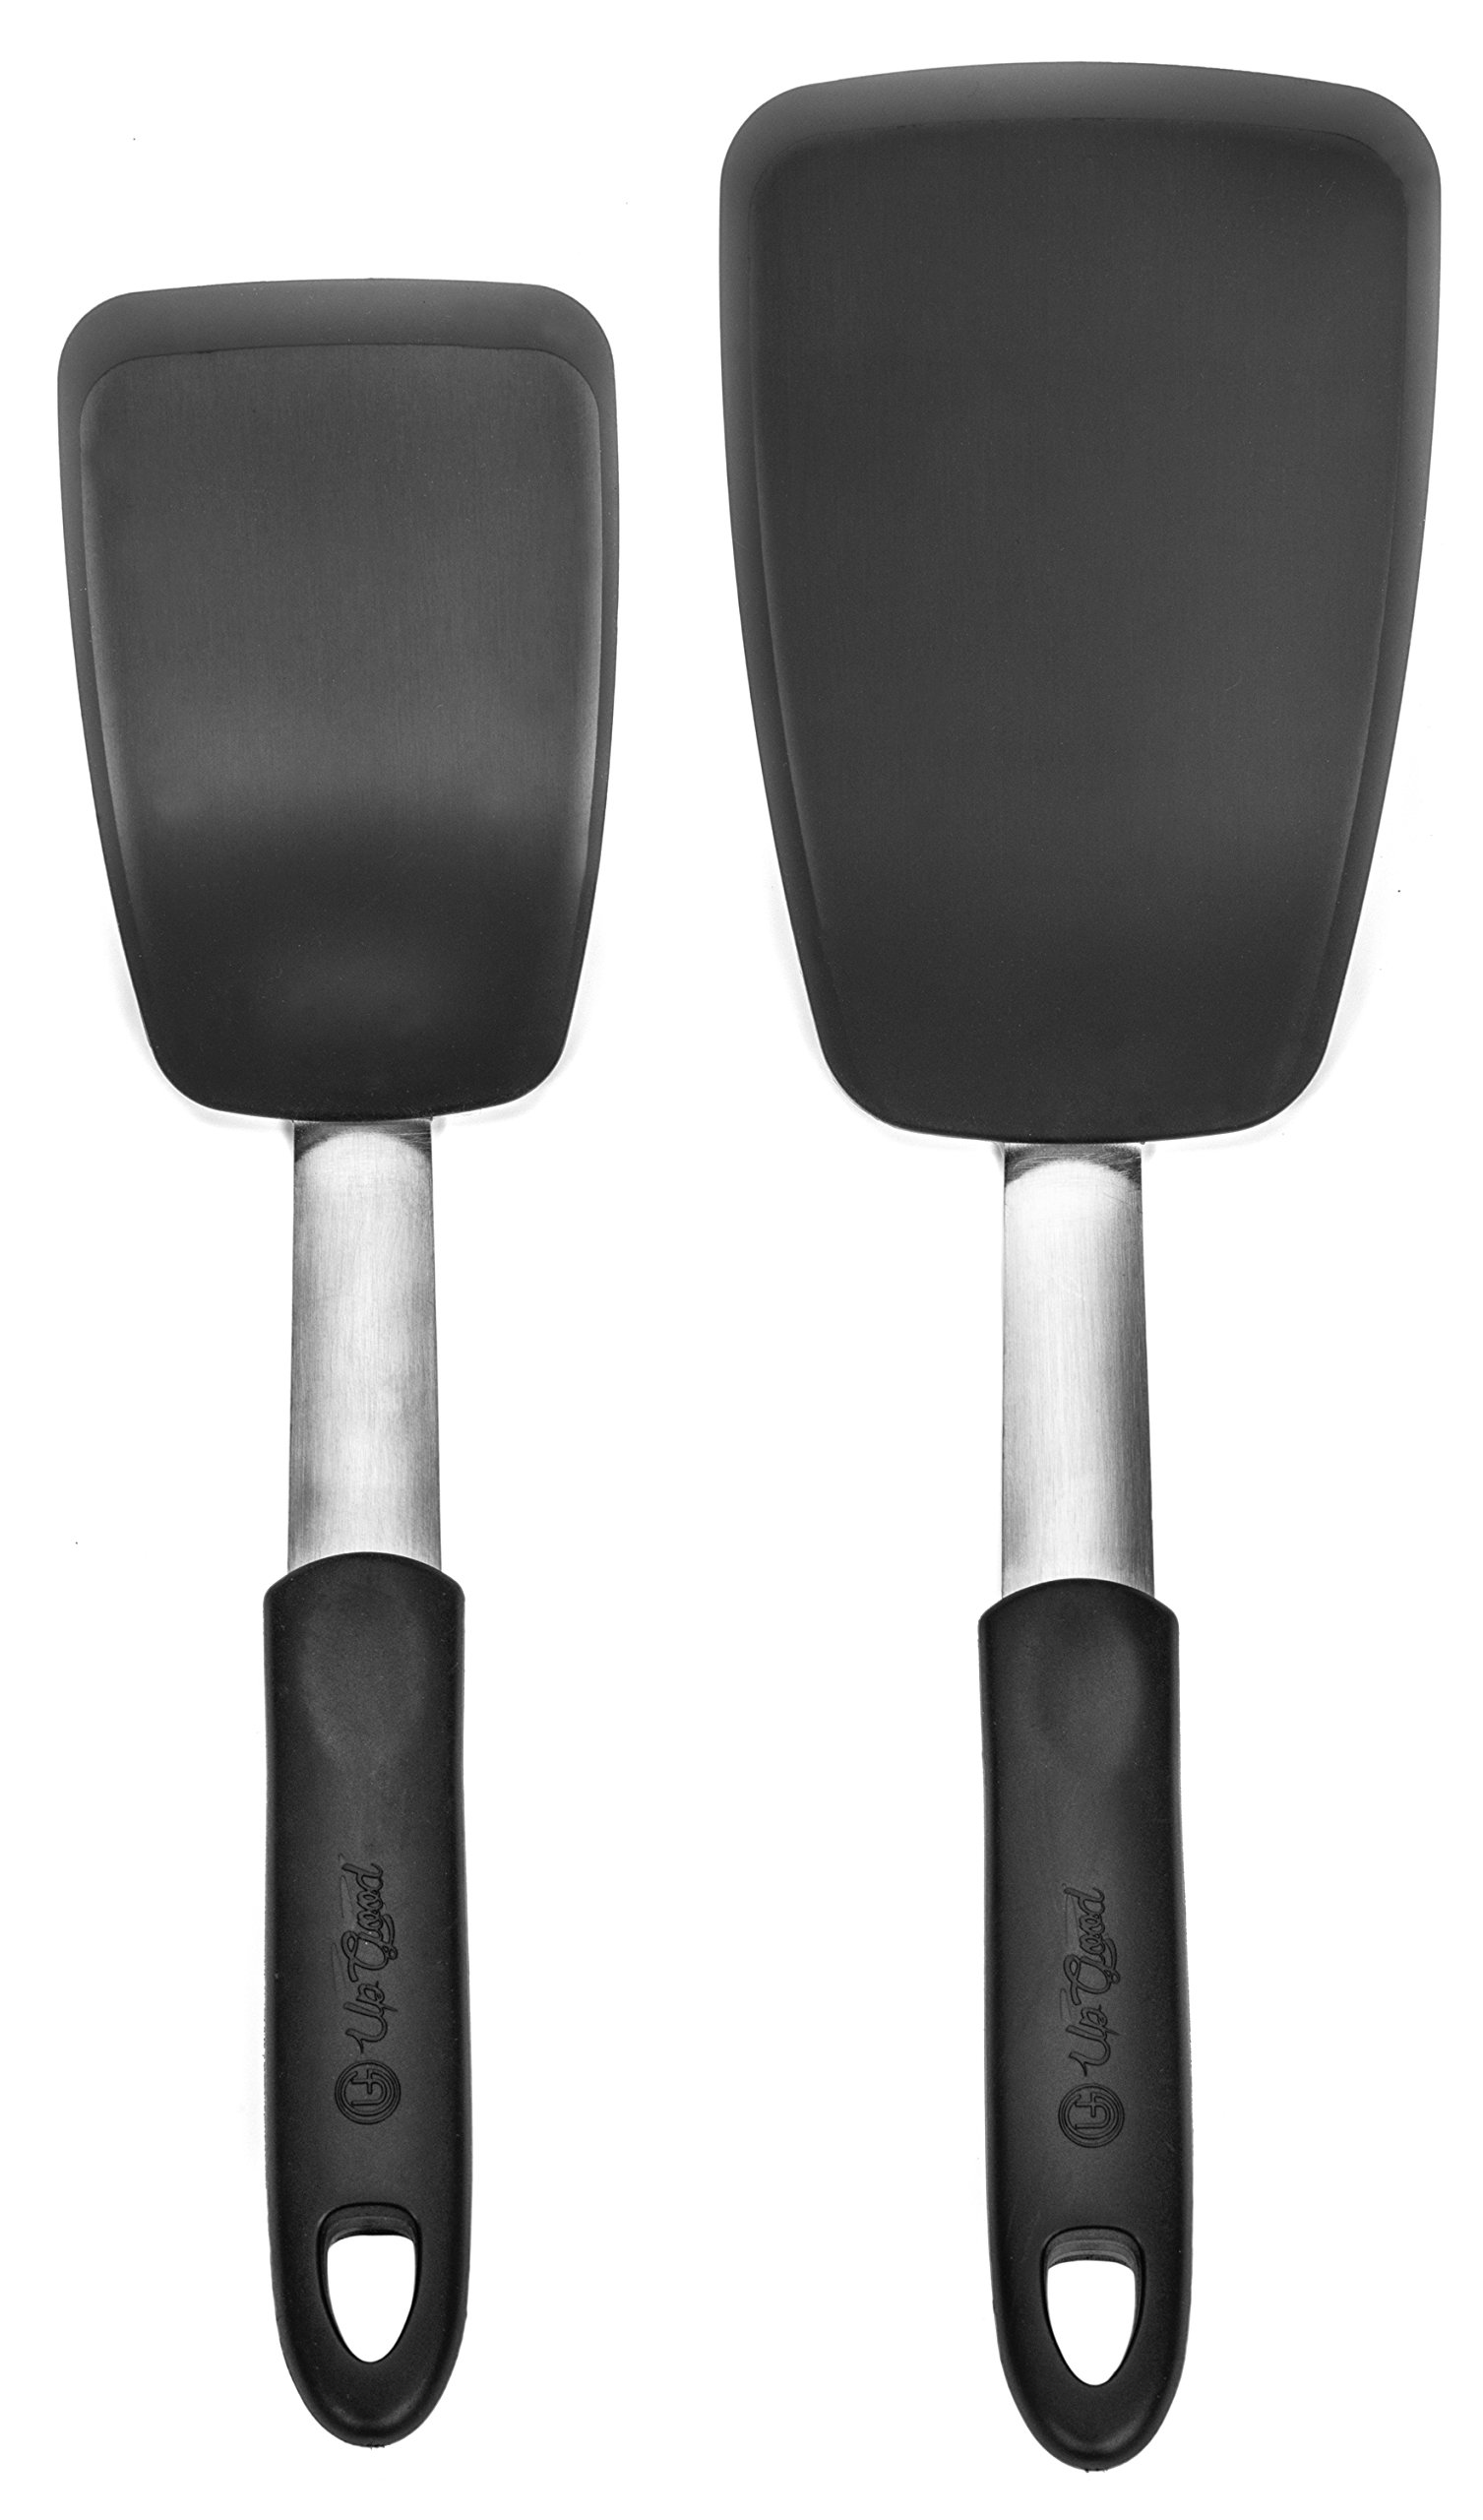 Turner Set | 2 Pack | Large and Small Kitchen Spatulas | Stainless Steel & Silicone | Non-Stick and Heat Resistant Utensils for Cooking, Flipping and Pressing (UpGood Kitchen Tools, Shadow Black) by UpGood (Image #7)